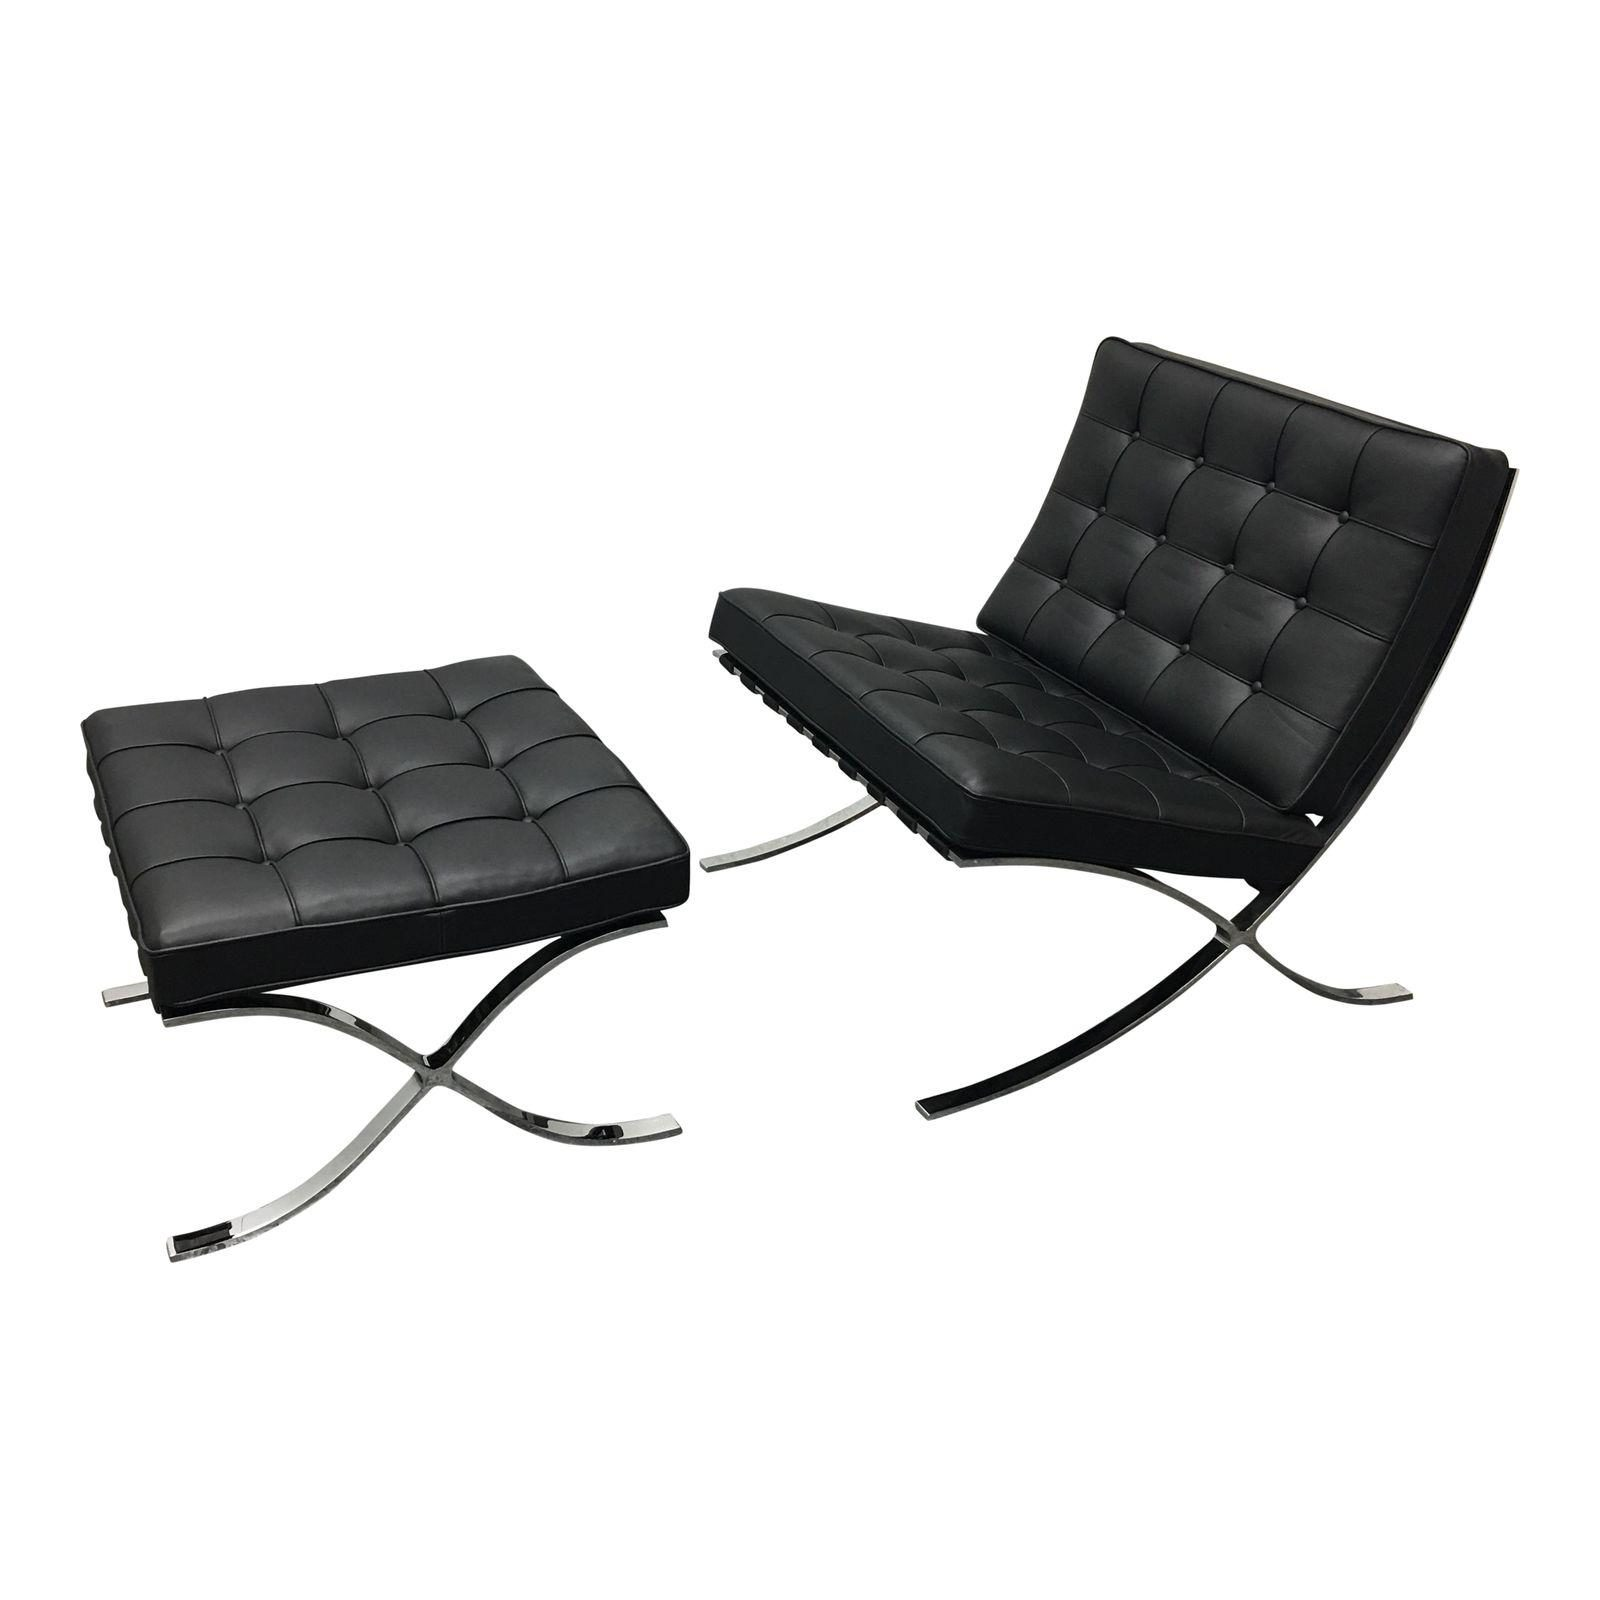 Chair Price Barcelona Chair With Ottoman Original Price 8 483 00 Design